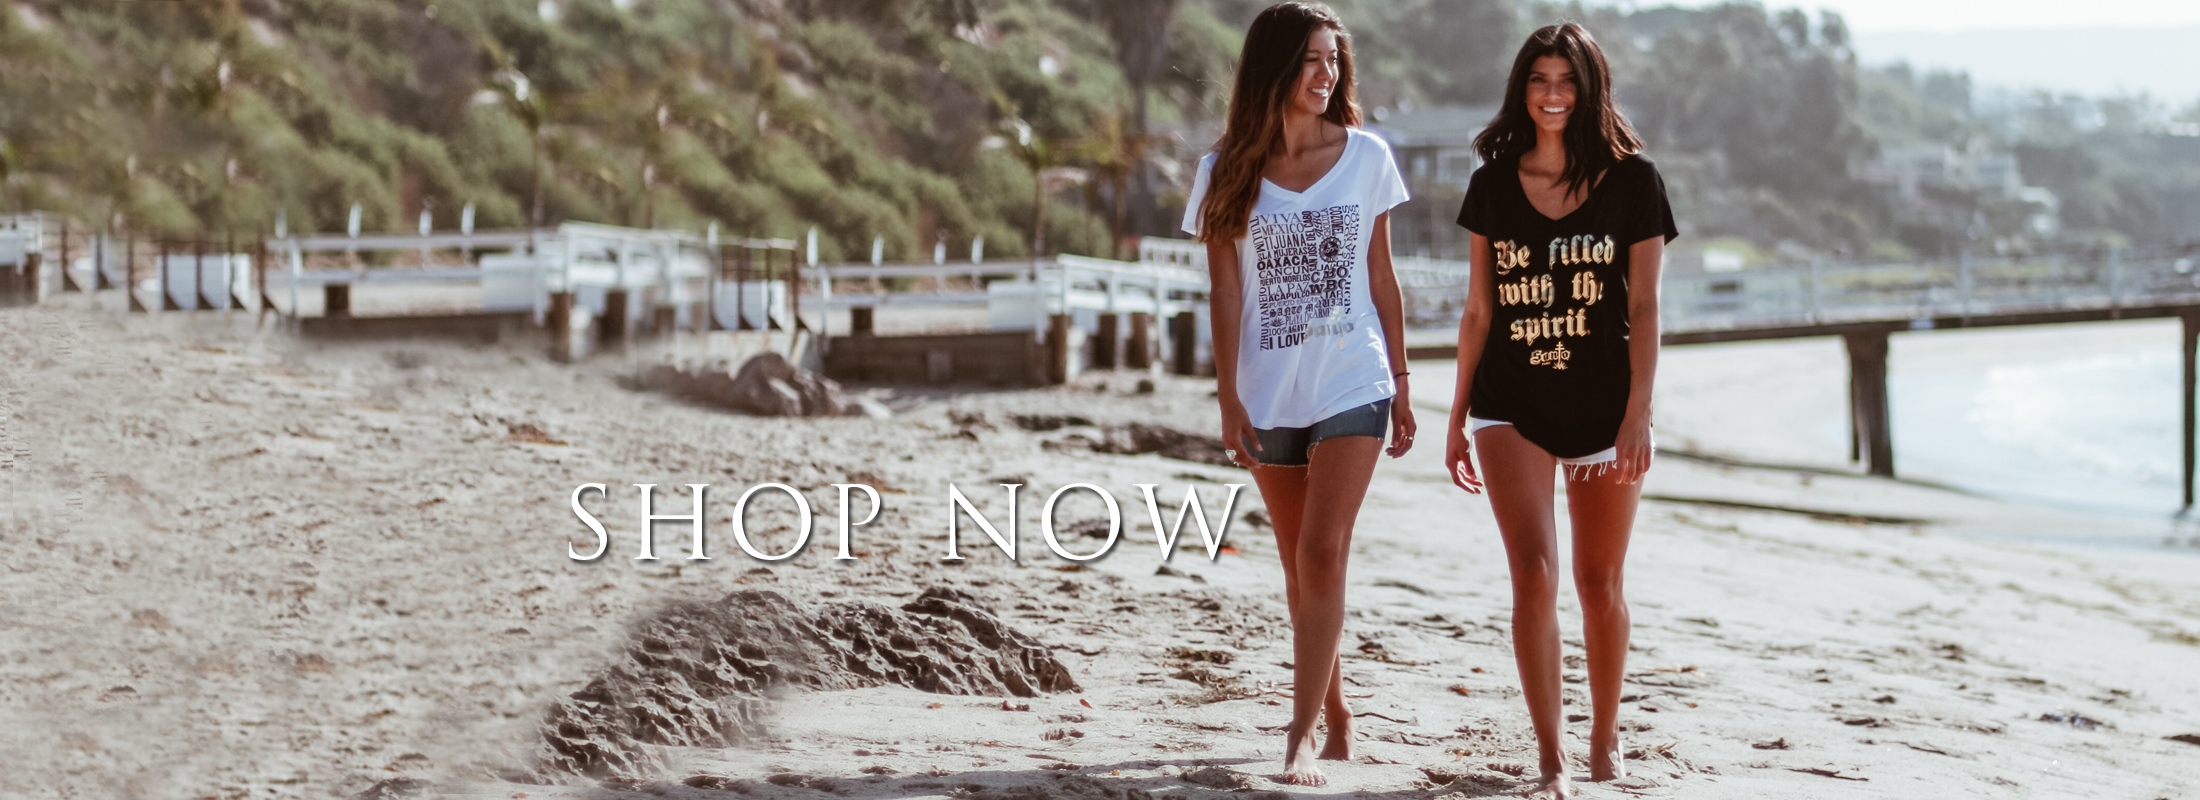 Two girls on beach in Santo inspired tees